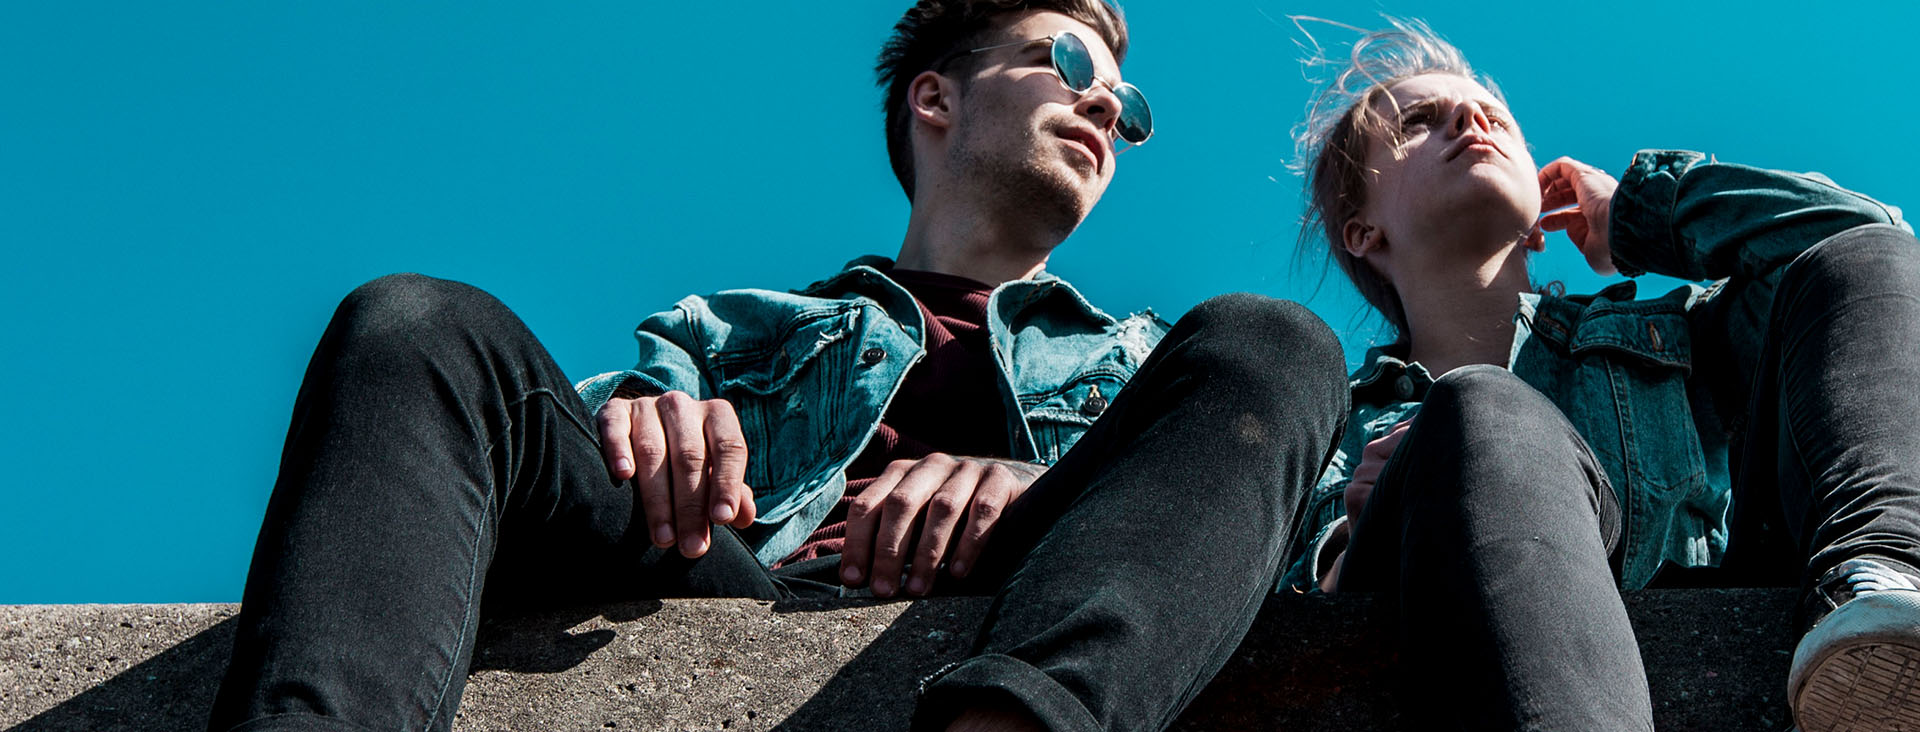 Two young people sitting on a stone against a blue sky